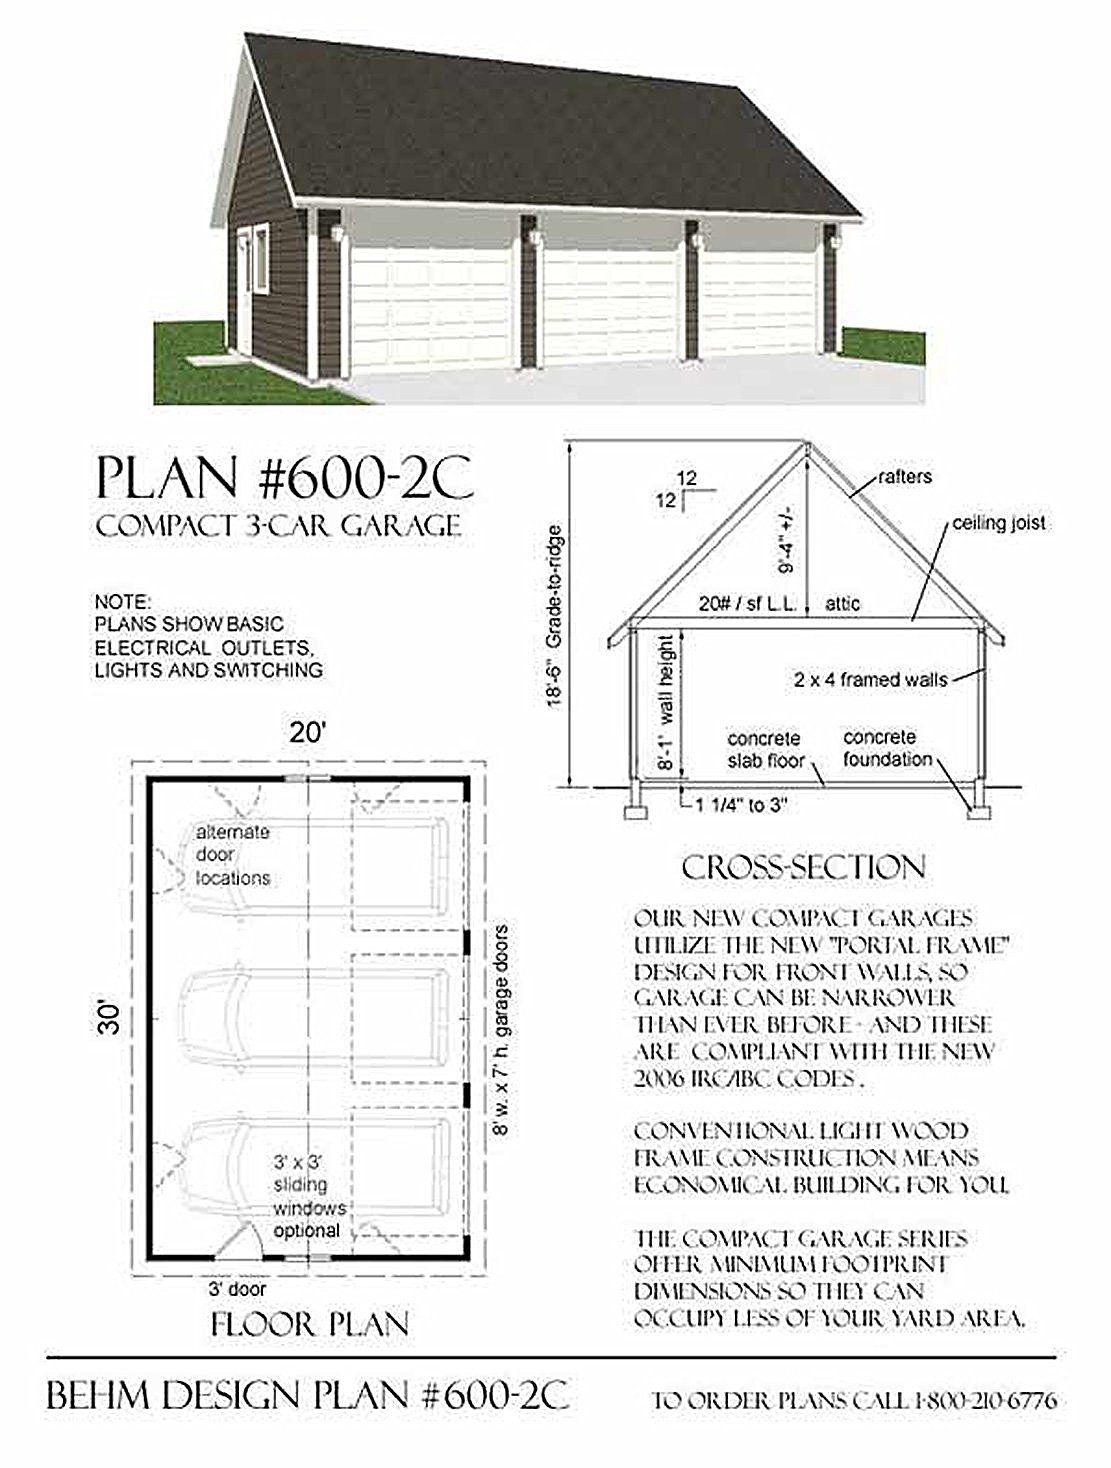 Garage Plans 2 Car 600 2c 30 X 22 Three Car Garage Plan By Behm Design Garage Plans Three Car Garage Plans 3 Car Garage Plans